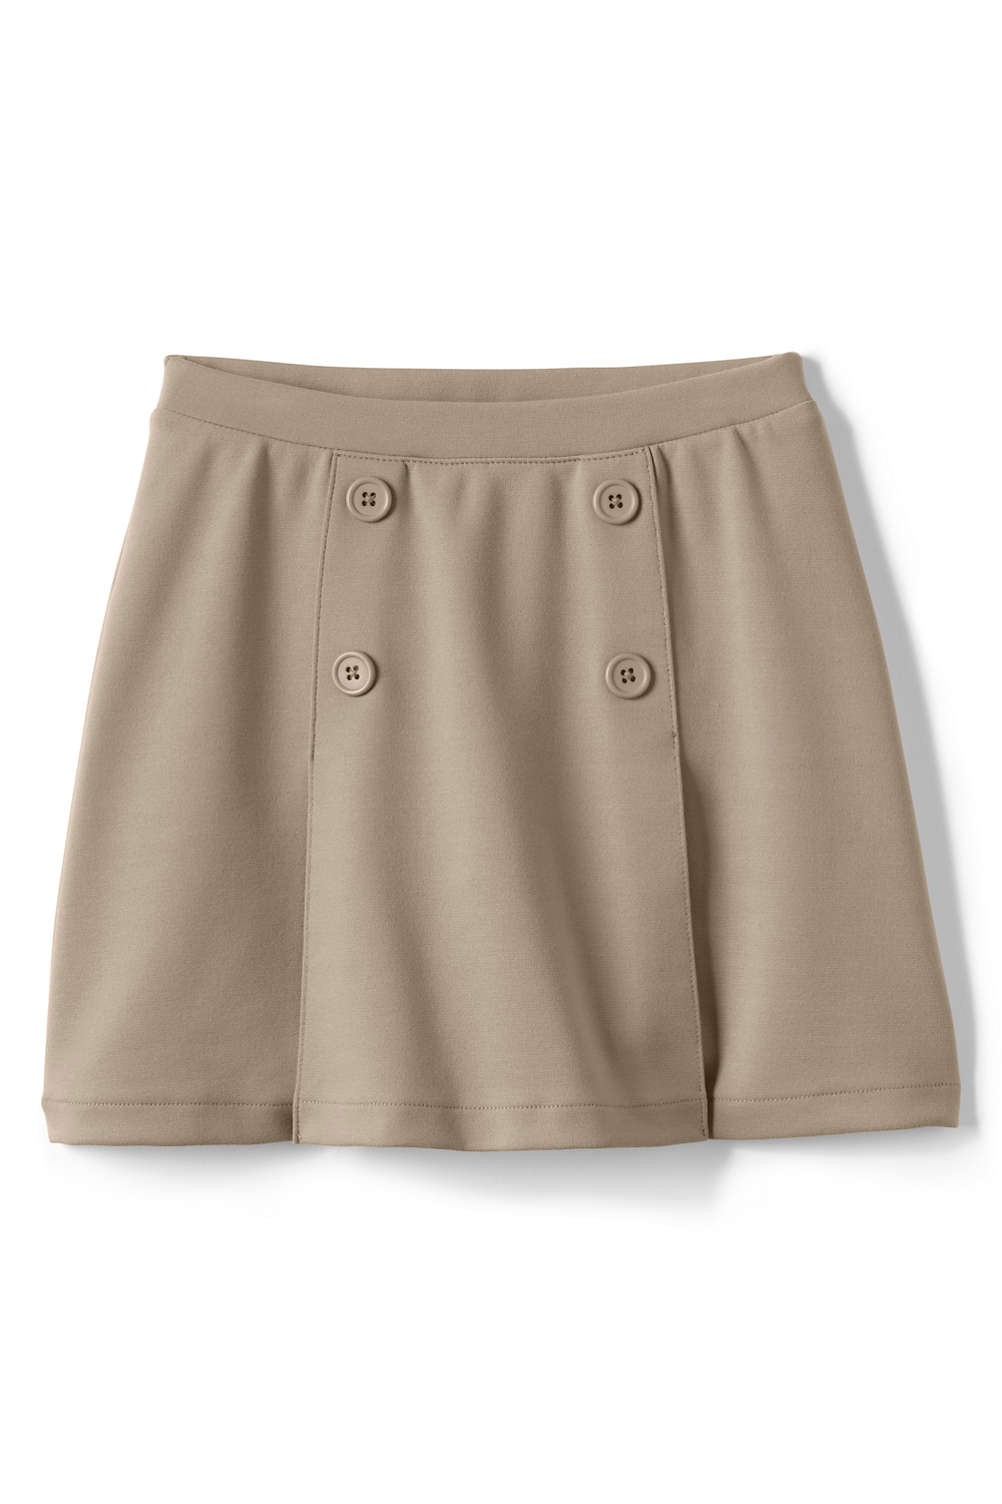 147615c58 School Uniform Ponté Button Front Skort from Lands' End